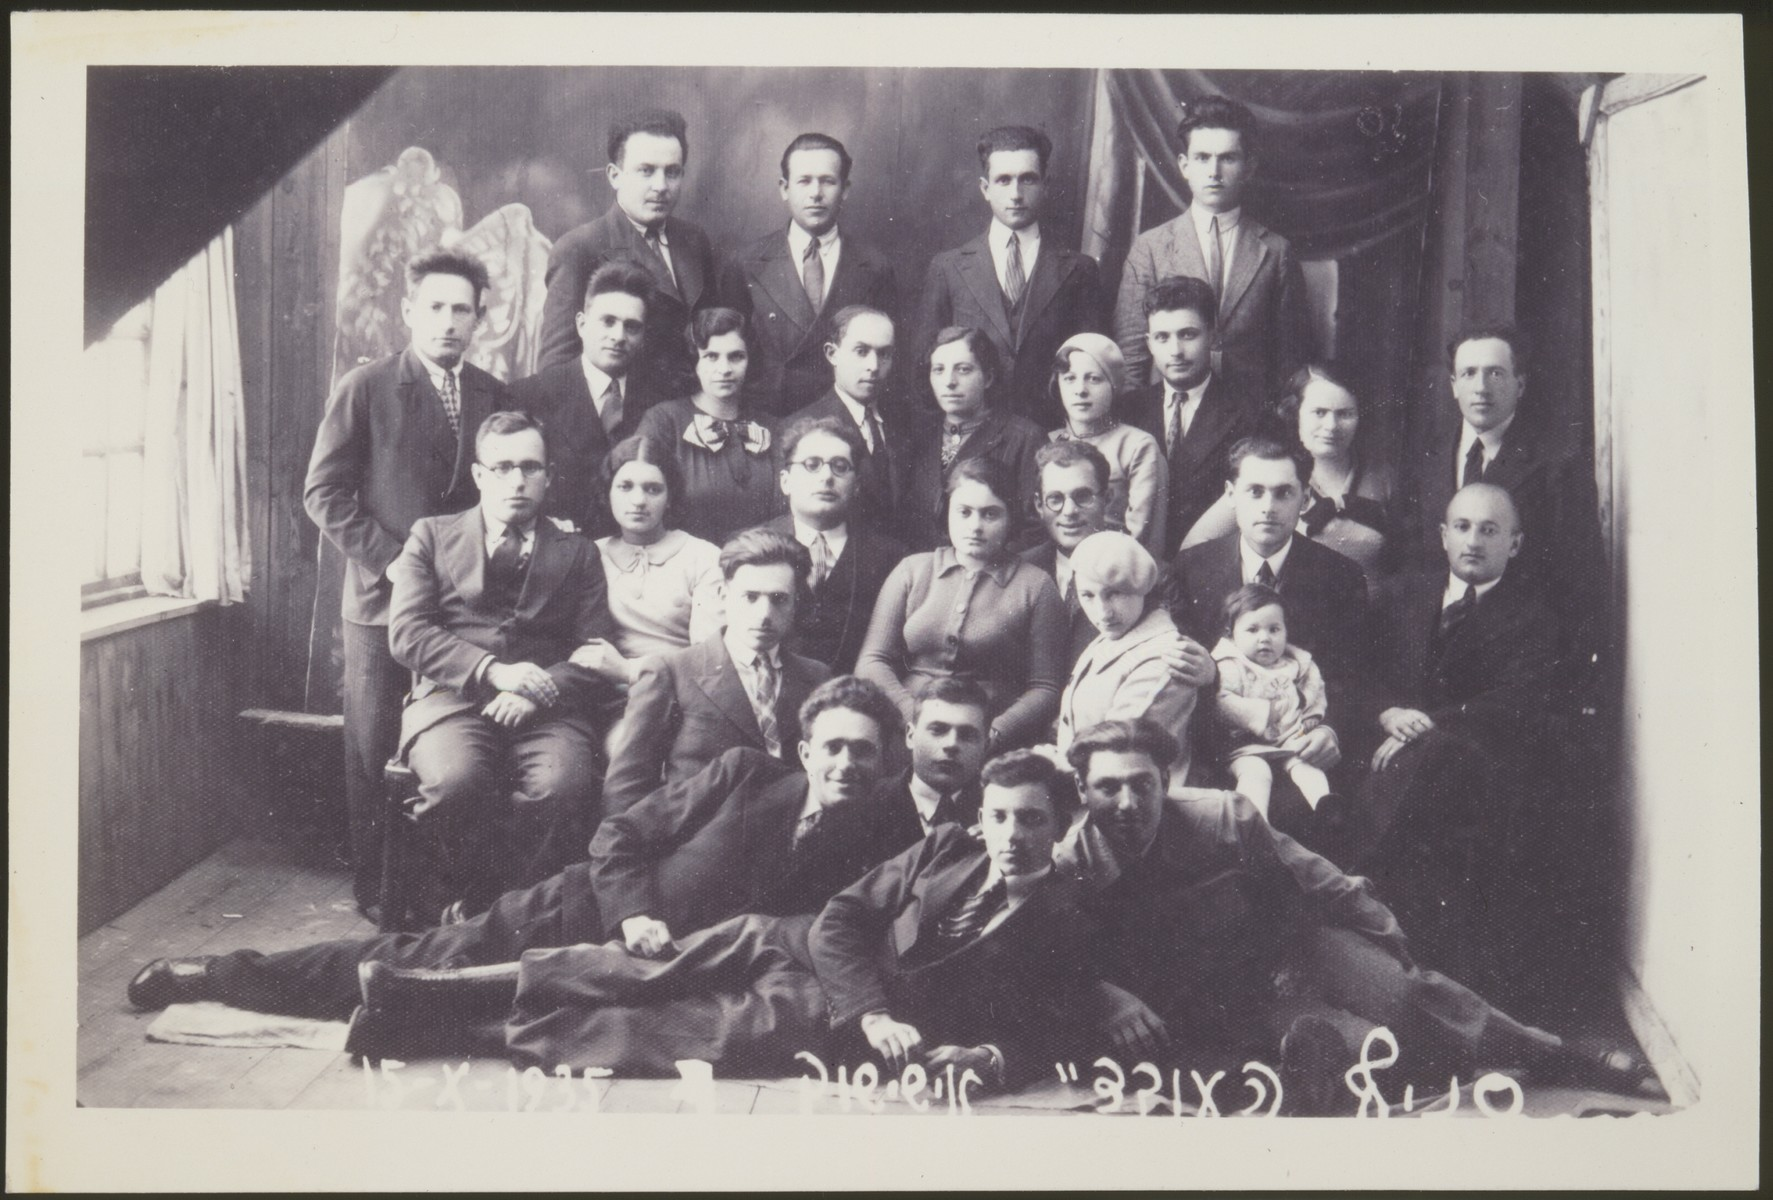 Members of the labor Zionist group, HaOved.  Top row from right to left: Mr. Pacianko (a glazier), Mr. Szulkin, unknown, Hirshke (a tailor).  Second row from the top from right to left: Yekutiel Levin and wife Szeine Burstein Levin, an unknown couple, Mrs. & Mr. Lebovitz (a pot maker), Mrs. Matikanski and her husband (known as the father of orphans), and unknown.  Third row from top, right to left: Beinshke Radunski (the barber), Yankl Levin holding his daughter, Mendl Politacki with his arm around Szeine Blacharowicz Burstein, unknown, Avraham Ele Politacki, first name unknown Germanishke and teacher Elkon.  Bottom row from right to left: Mr. Burdeshynski, Mr Garmenishki (murdered by a fellow Jew over a woman), Sholem Kahn and Mr. Dimitrowski.  Motke Bustein is sitting in front of Avraham Ele Politacki.  Only Szeine Blacharowicz Burstein survived the Holocaust.